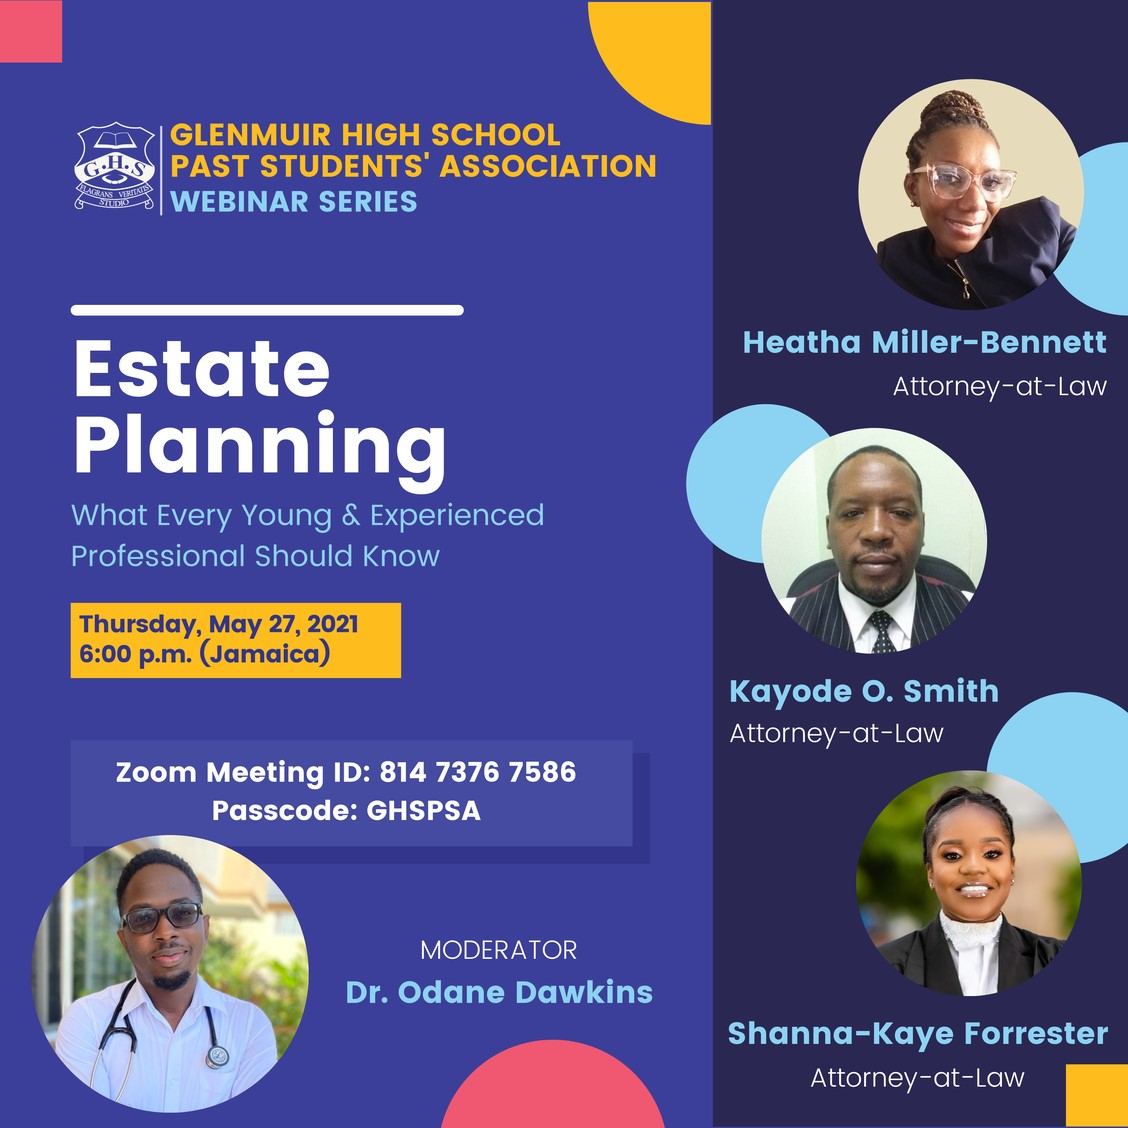 Estate Planning - What Every Young & Experienced Professional Should Know